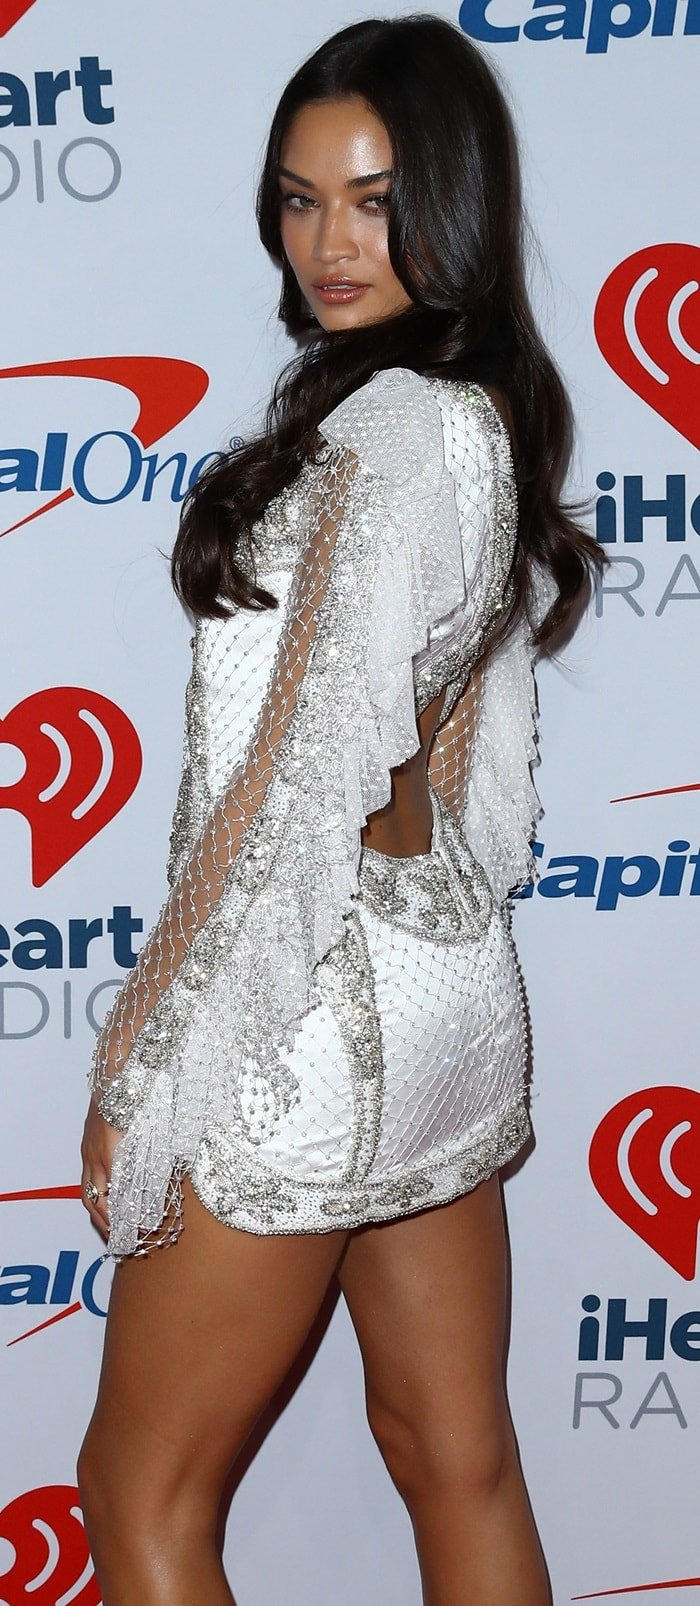 Shanina Shaik wearing a dazzling beaded dress featuring sheer sleeves and an exposed lower back